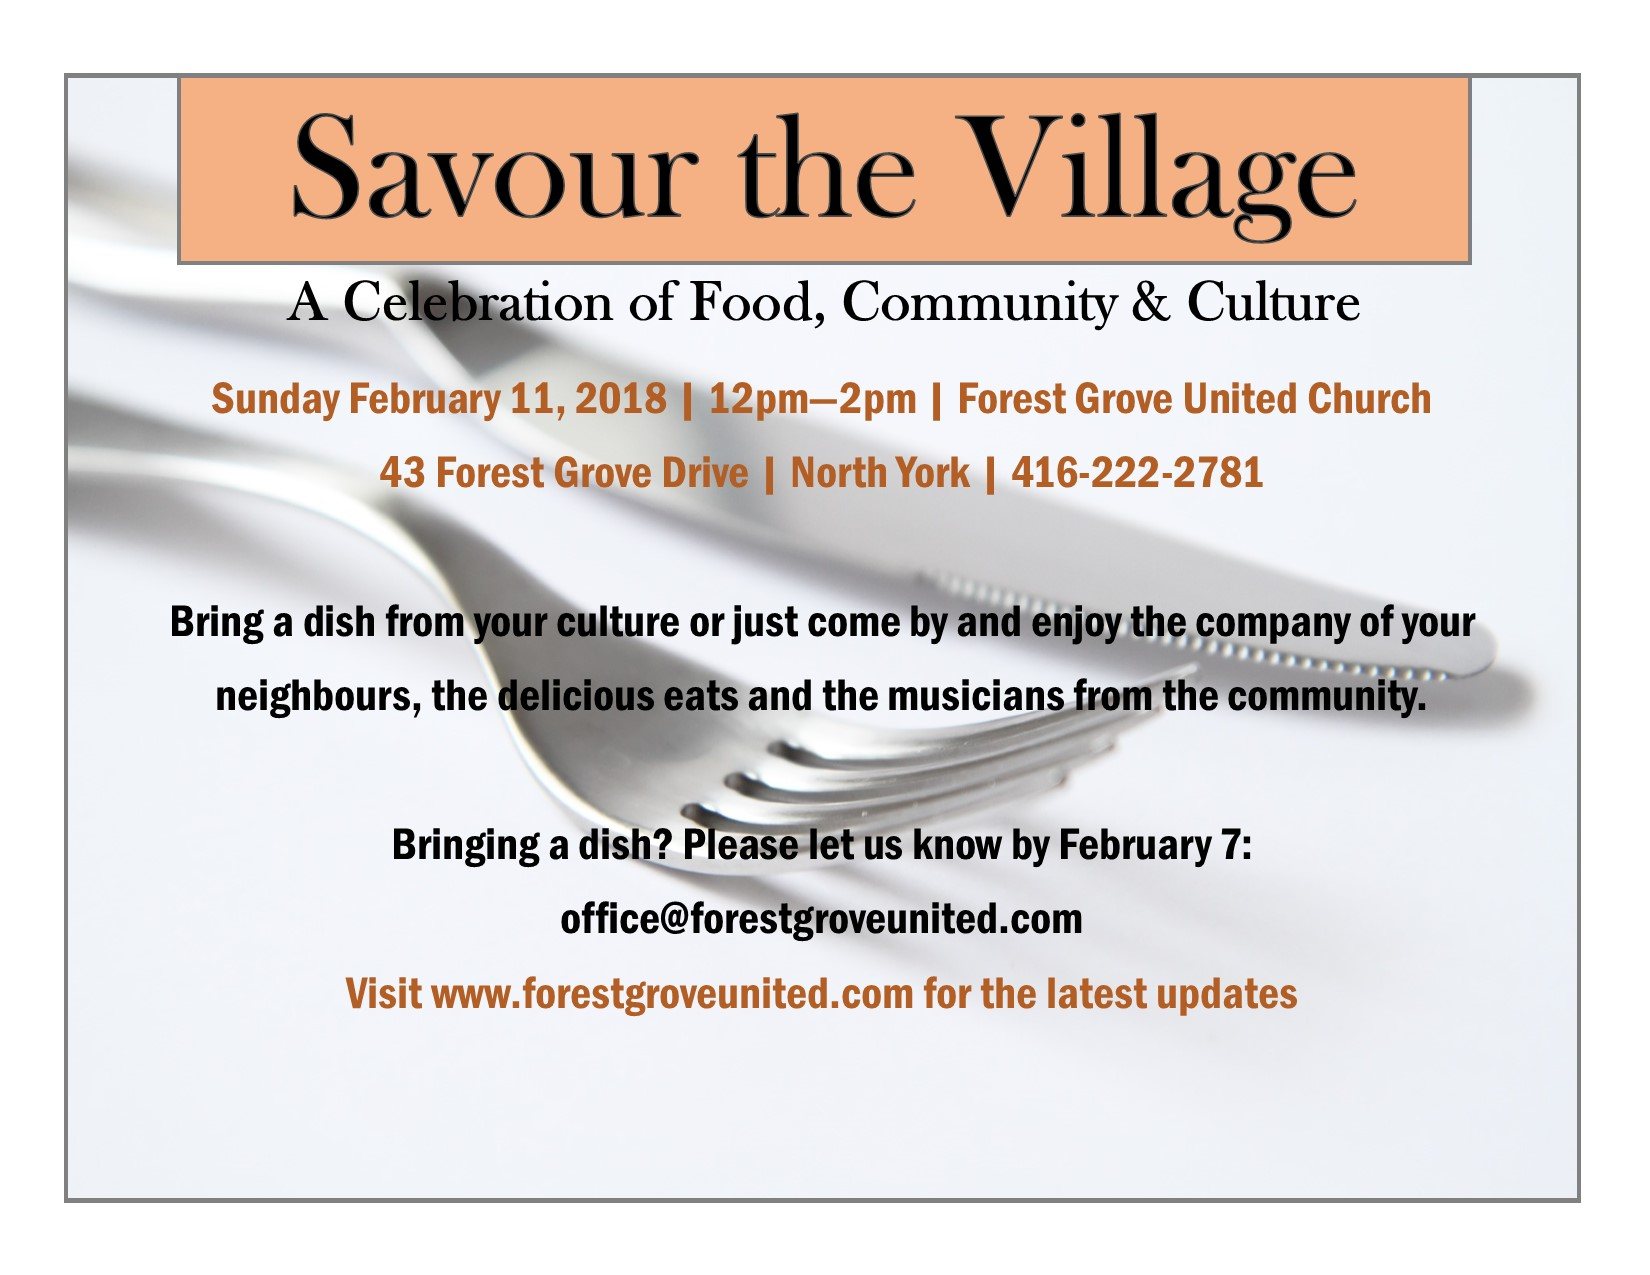 SavourtheVillage2018.jpg